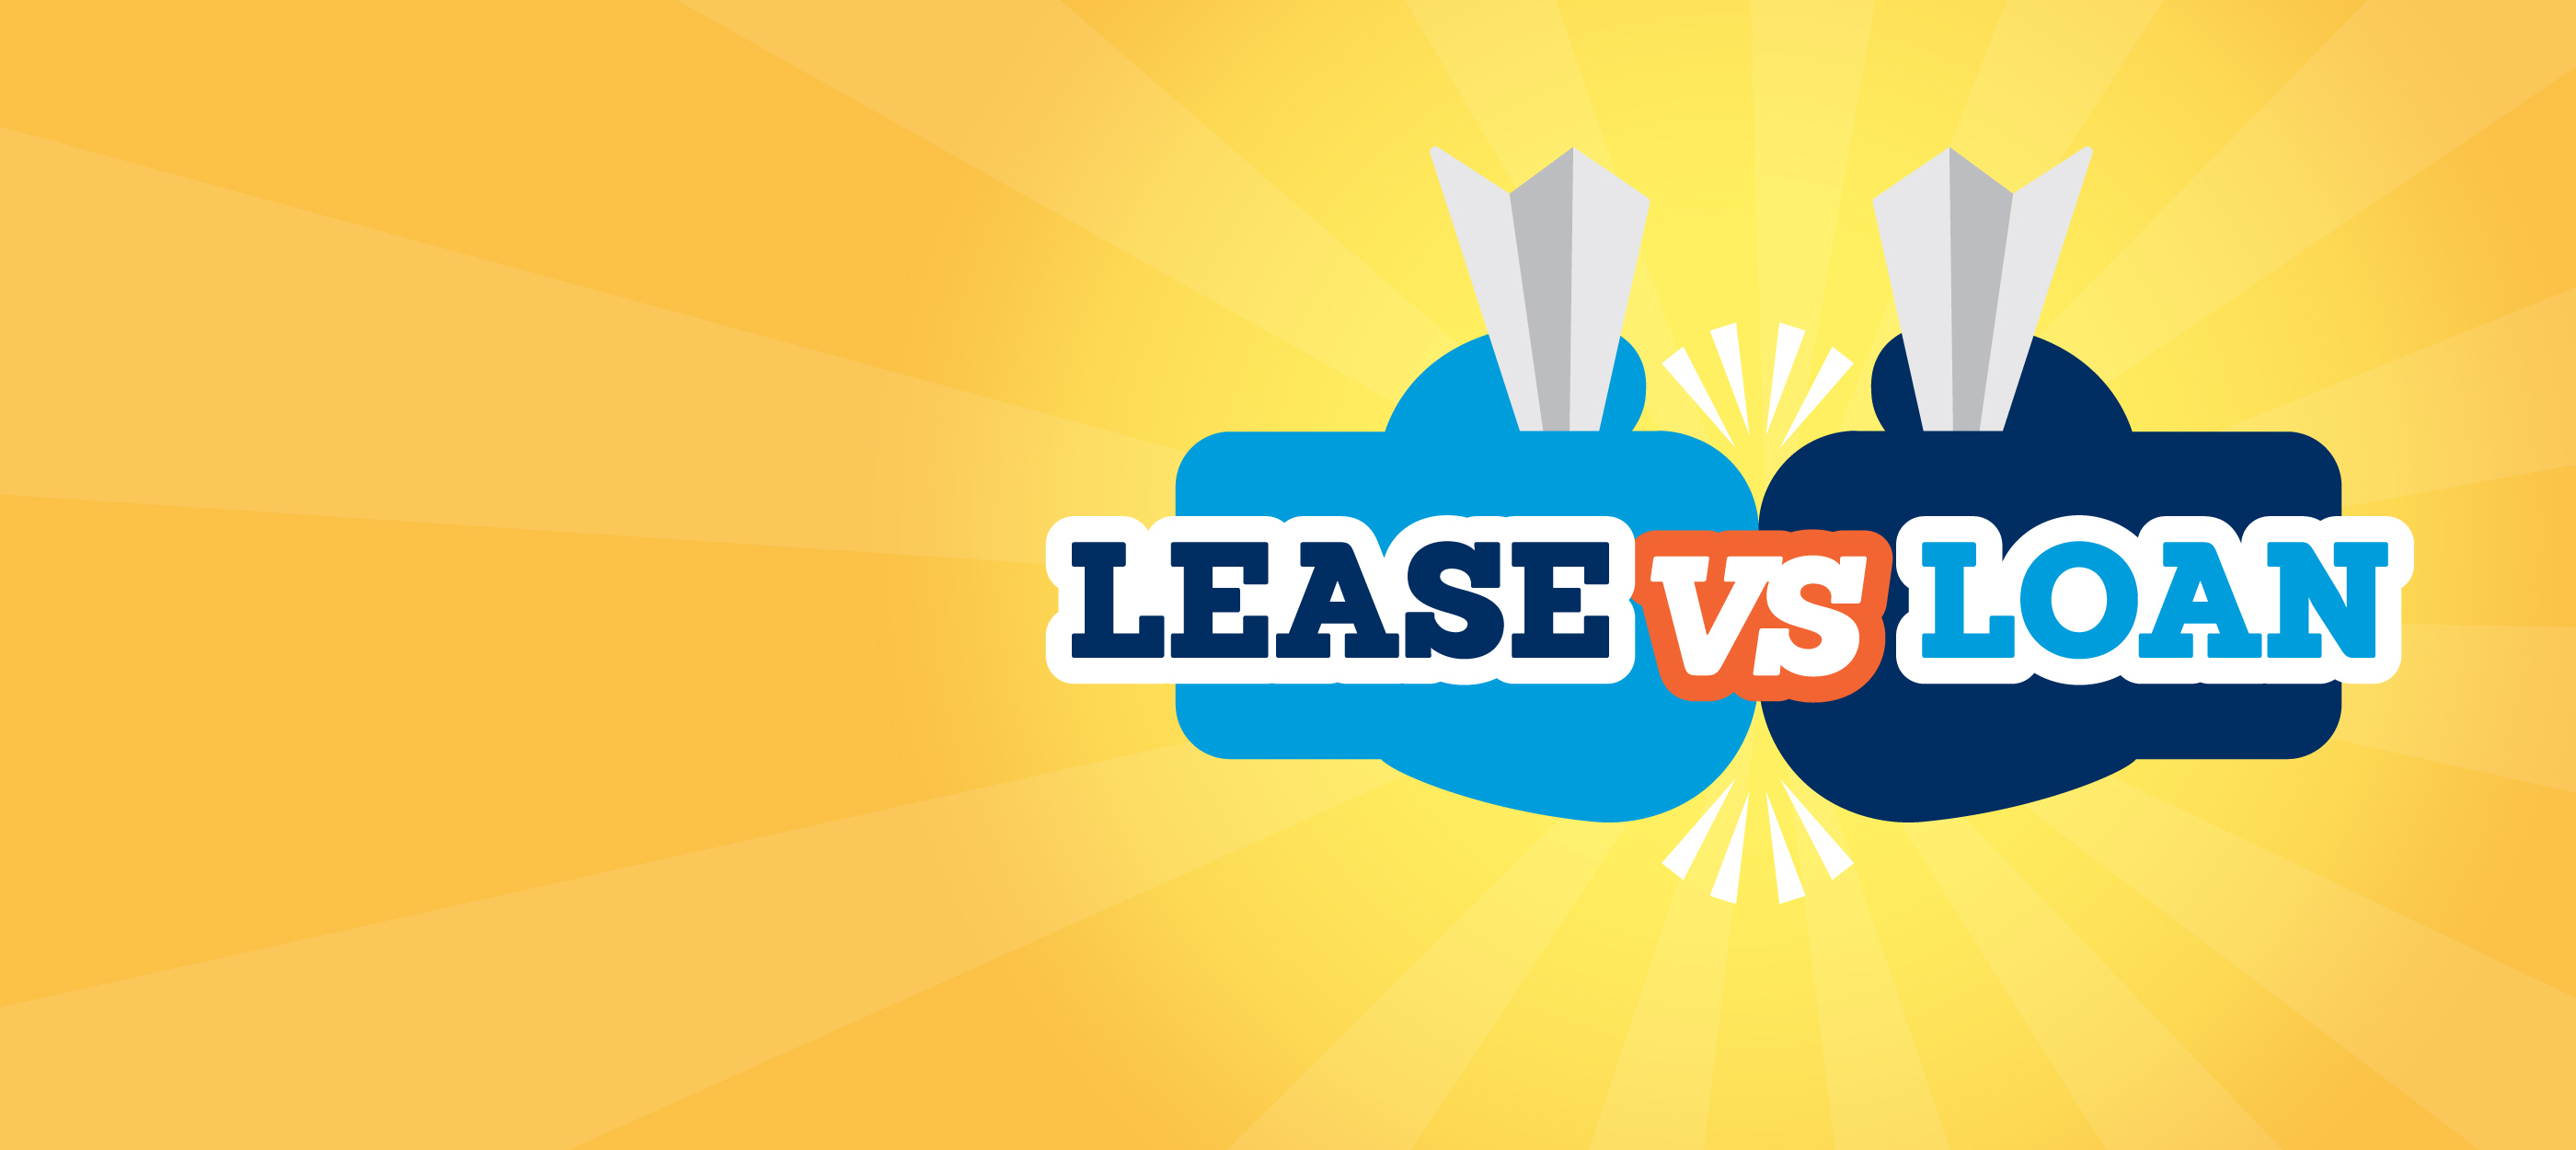 A lease and loan going head to head symbolized with boxing gloves